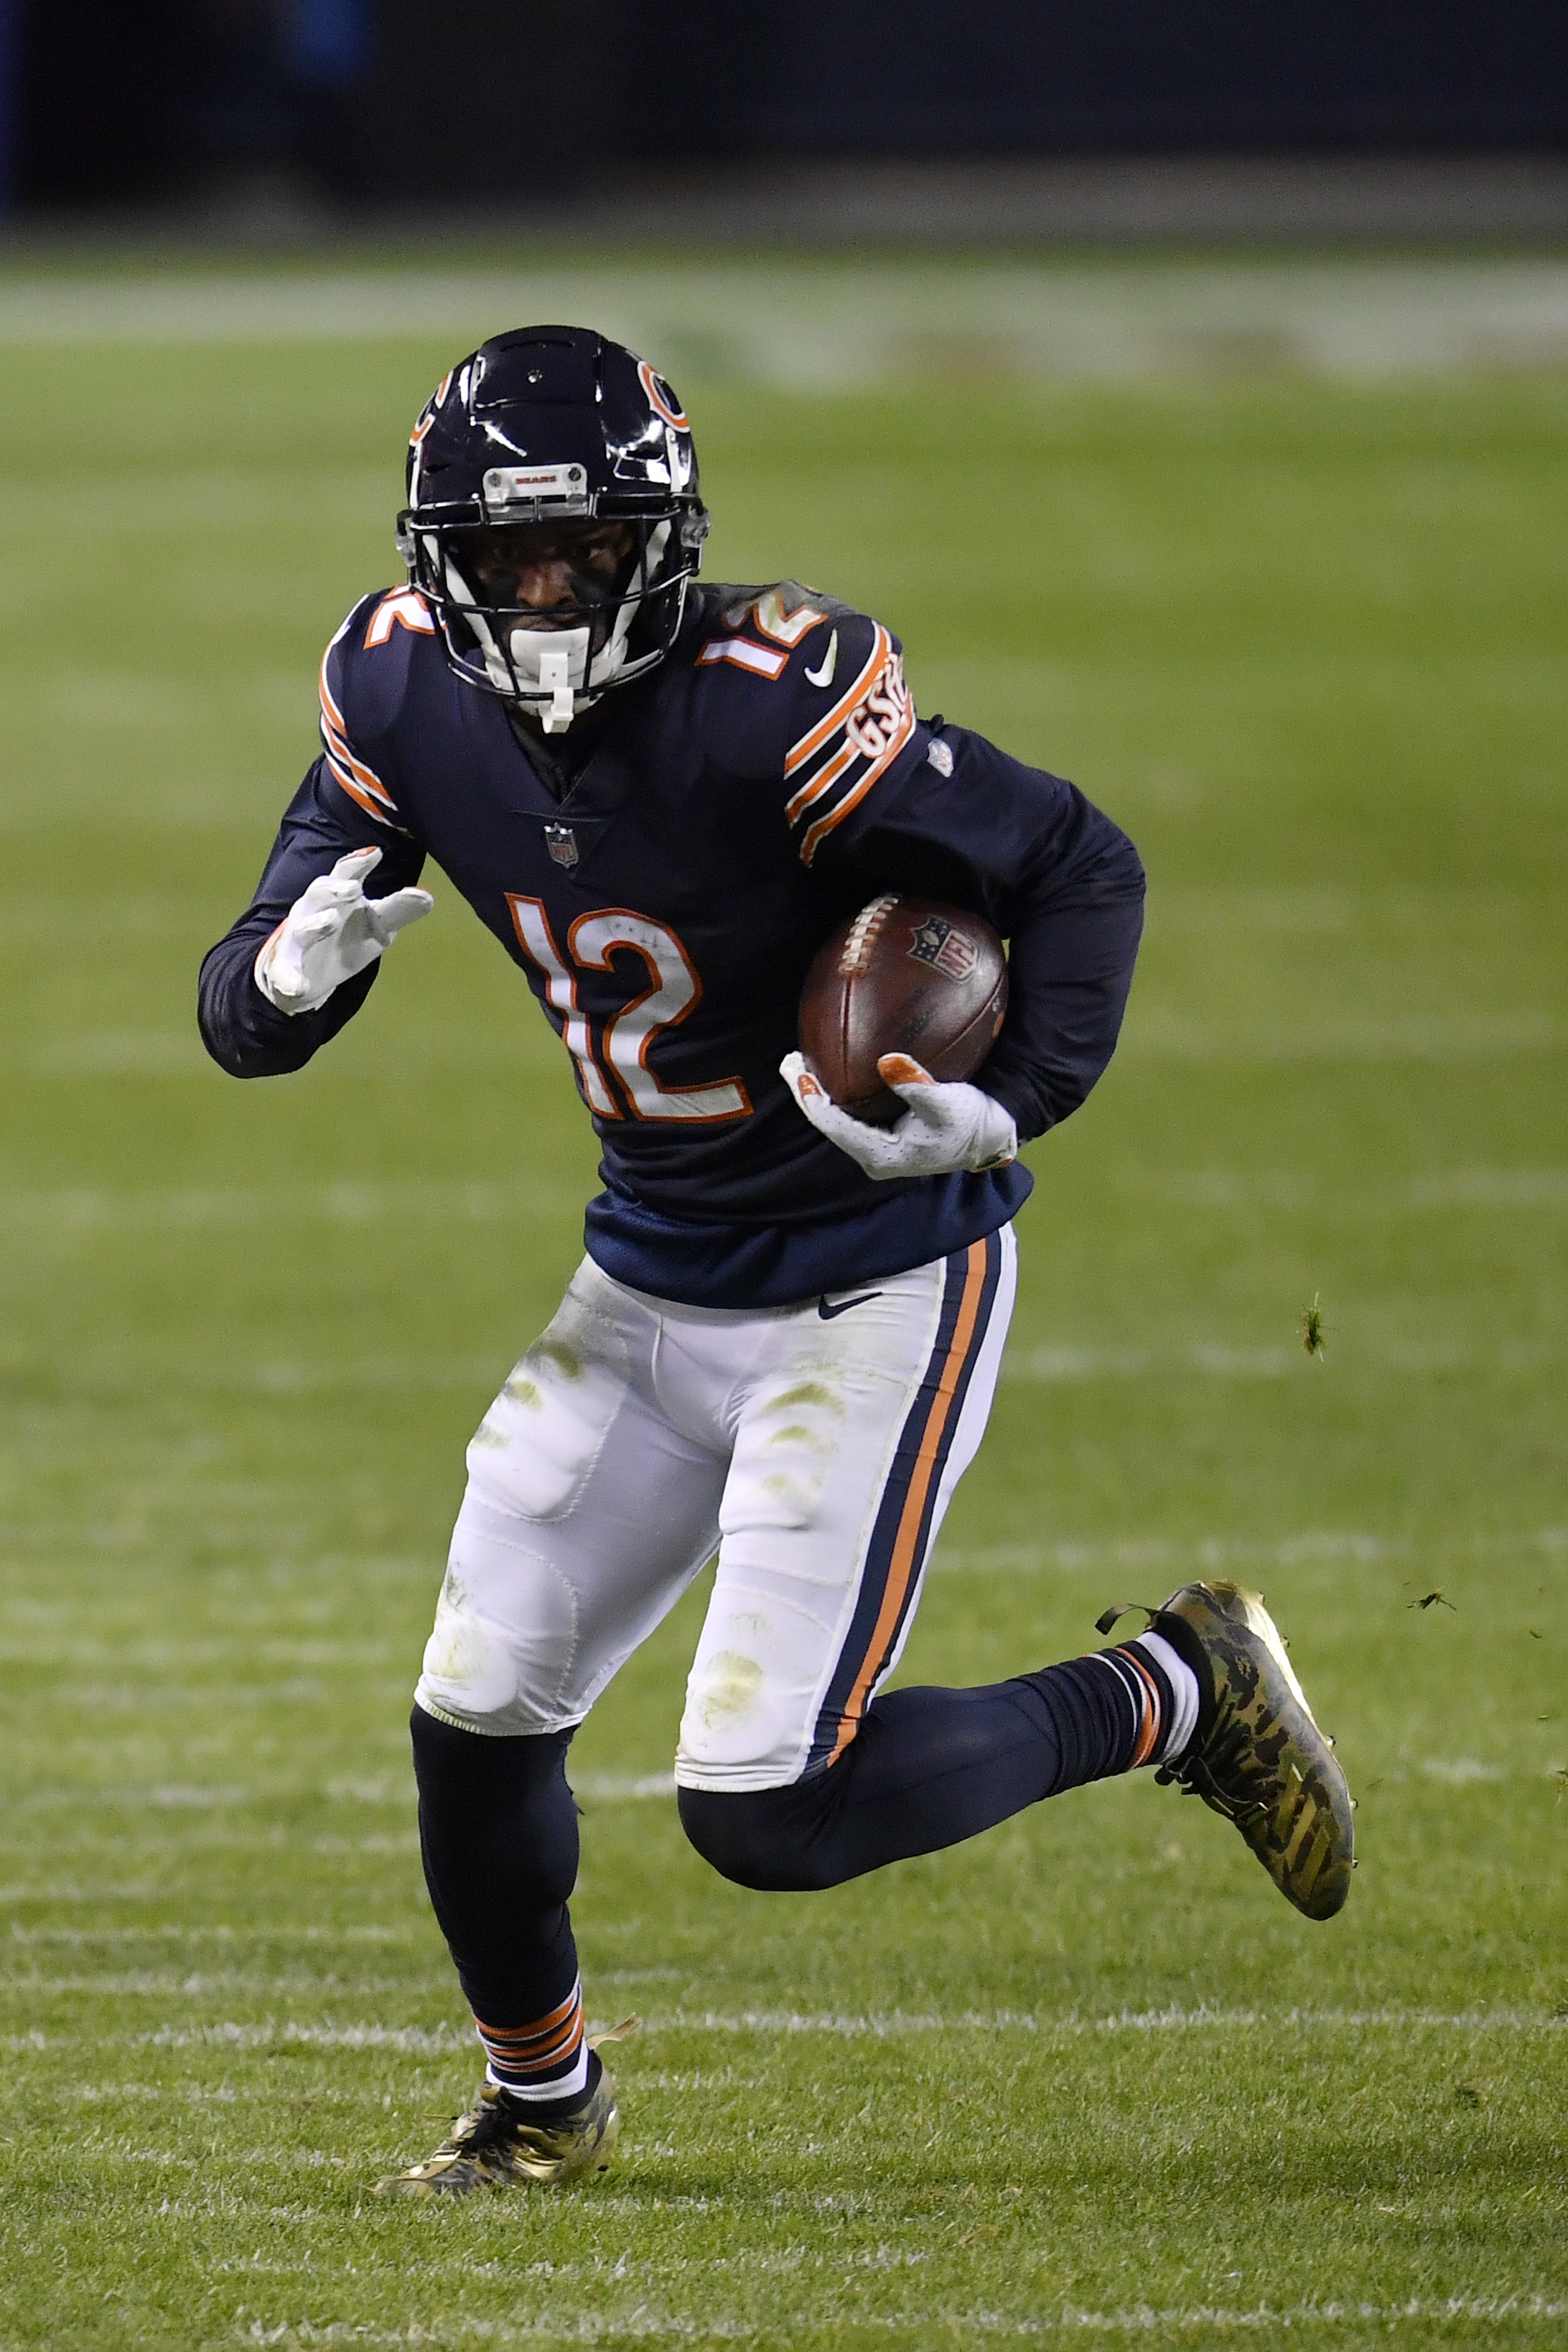 Allen Robinson #12 of the Chicago Bears against the New Orleans Saints at Soldier Field on November 01, 2020 in Chicago, Illinois.